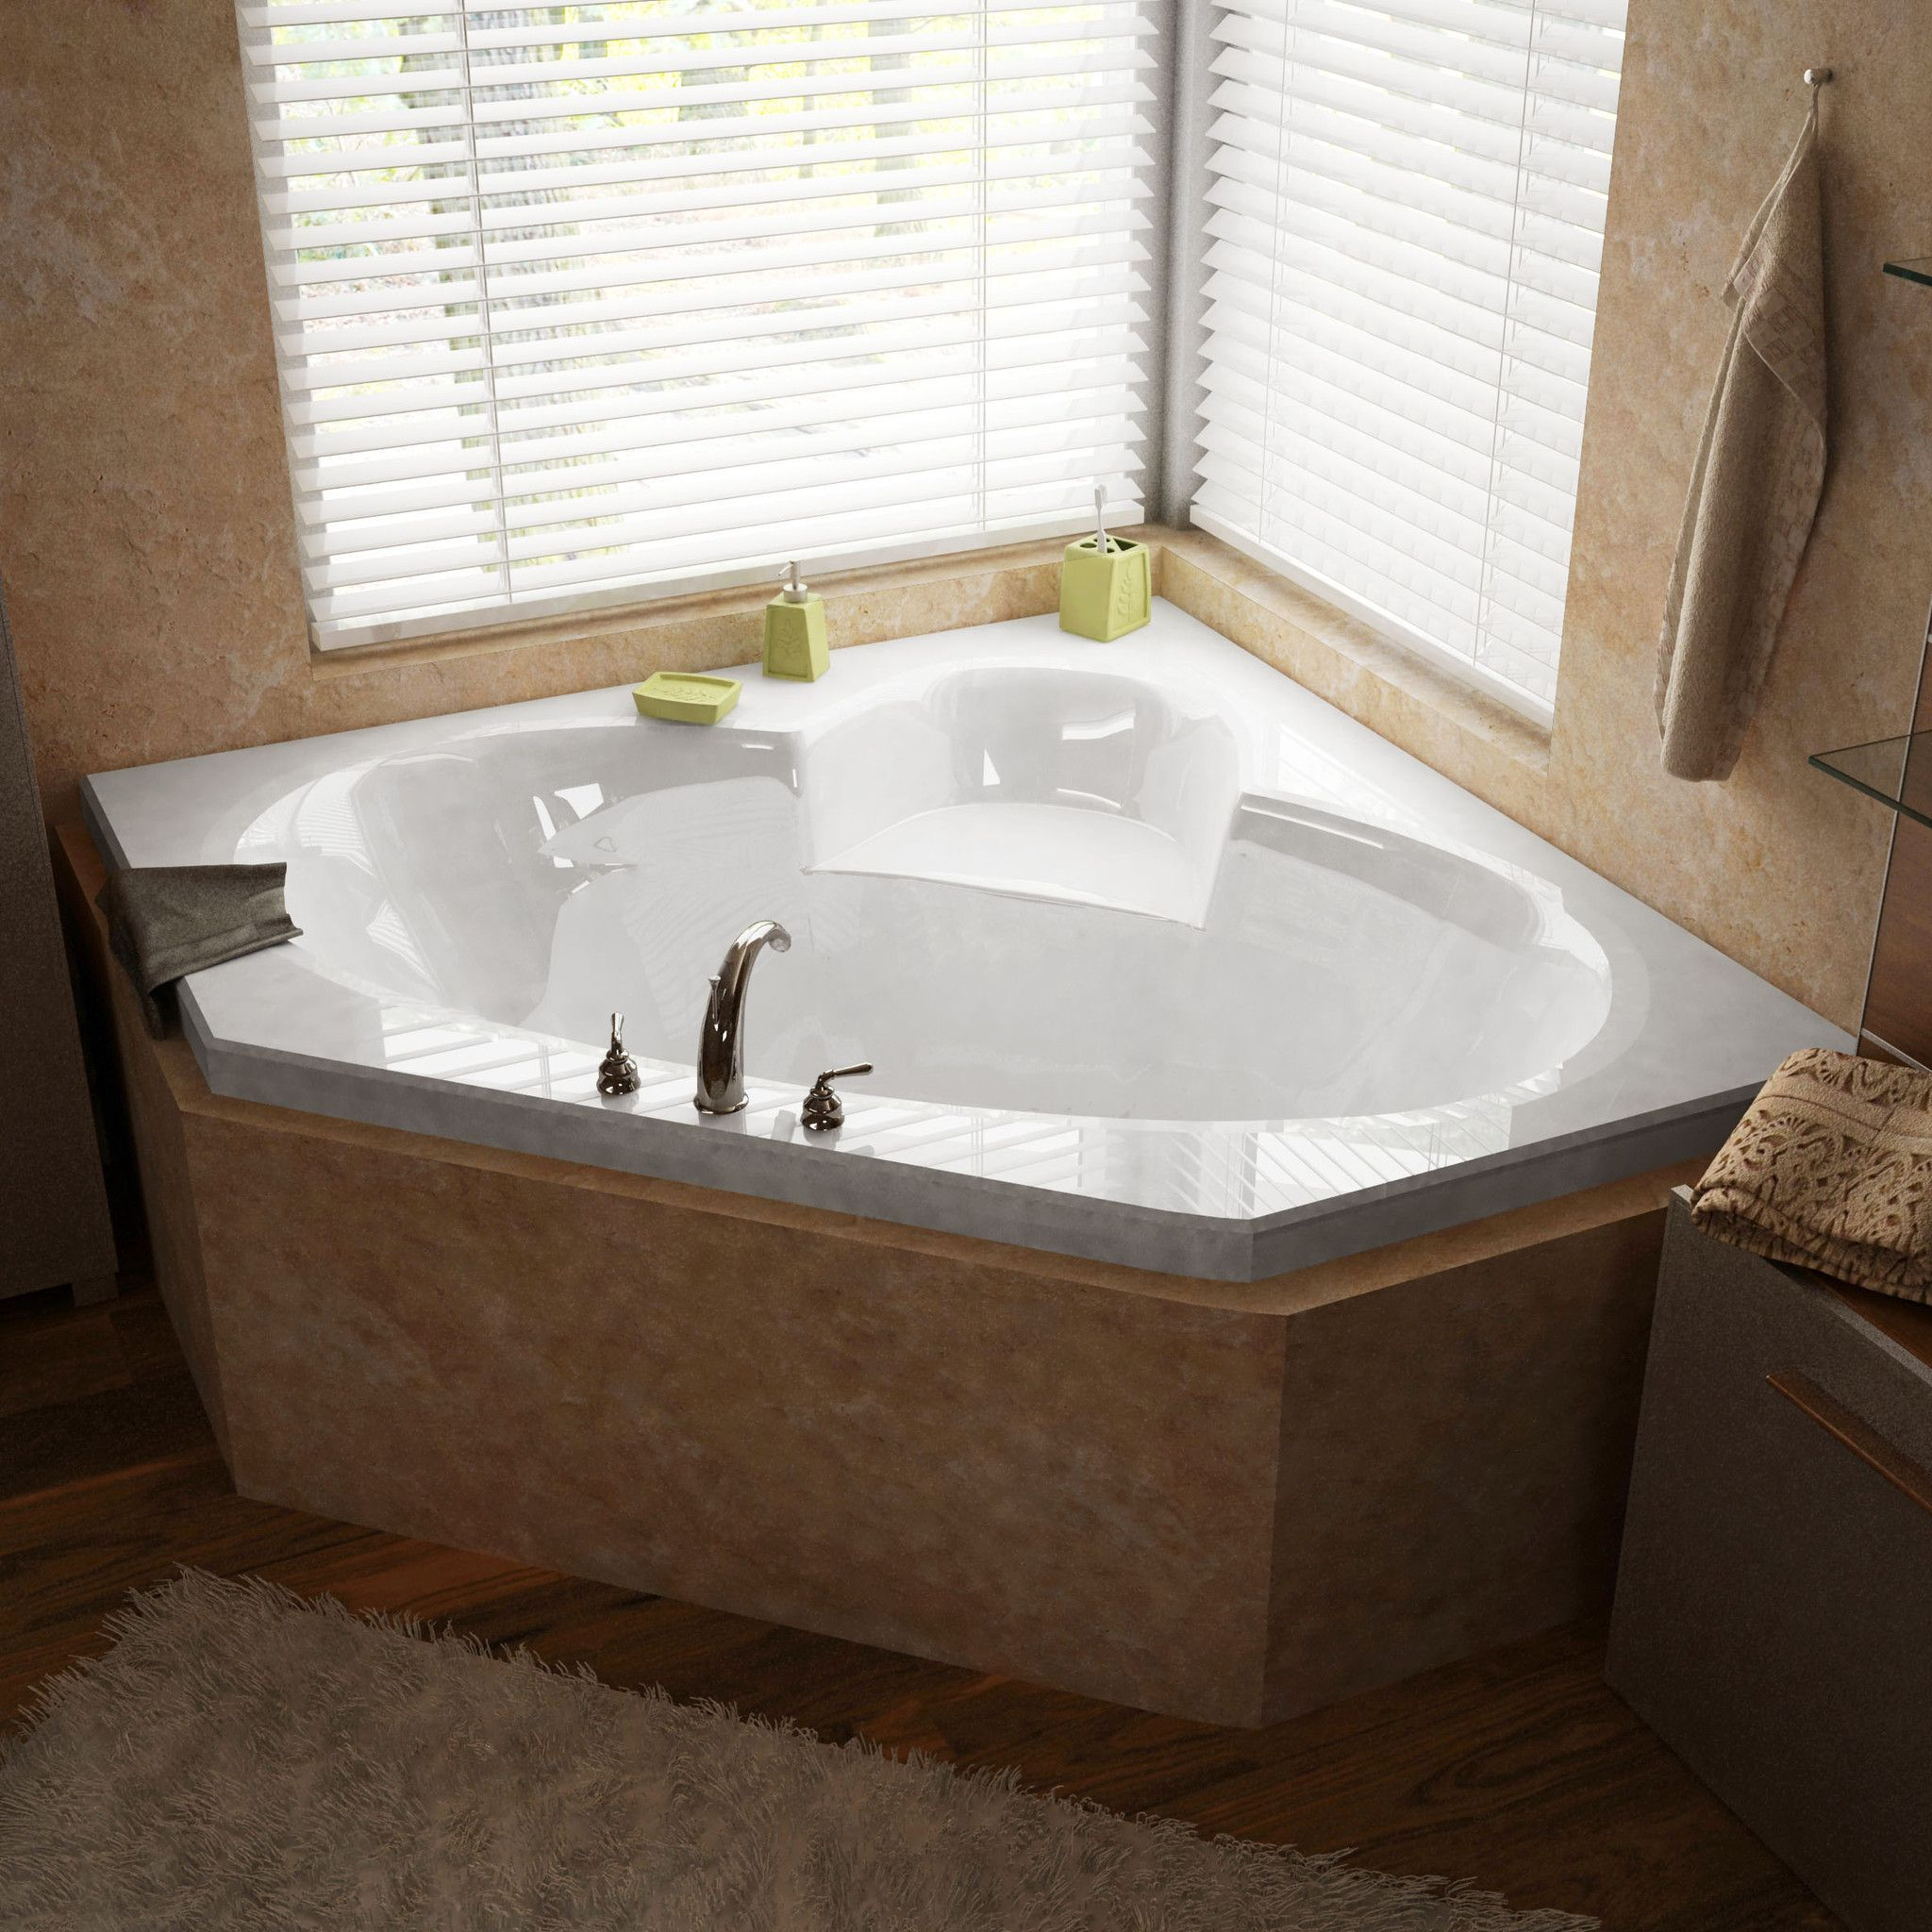 Venzi VZ6060SAR Ambra 60 x 60 Corner Air Jetted Bathtub with ...